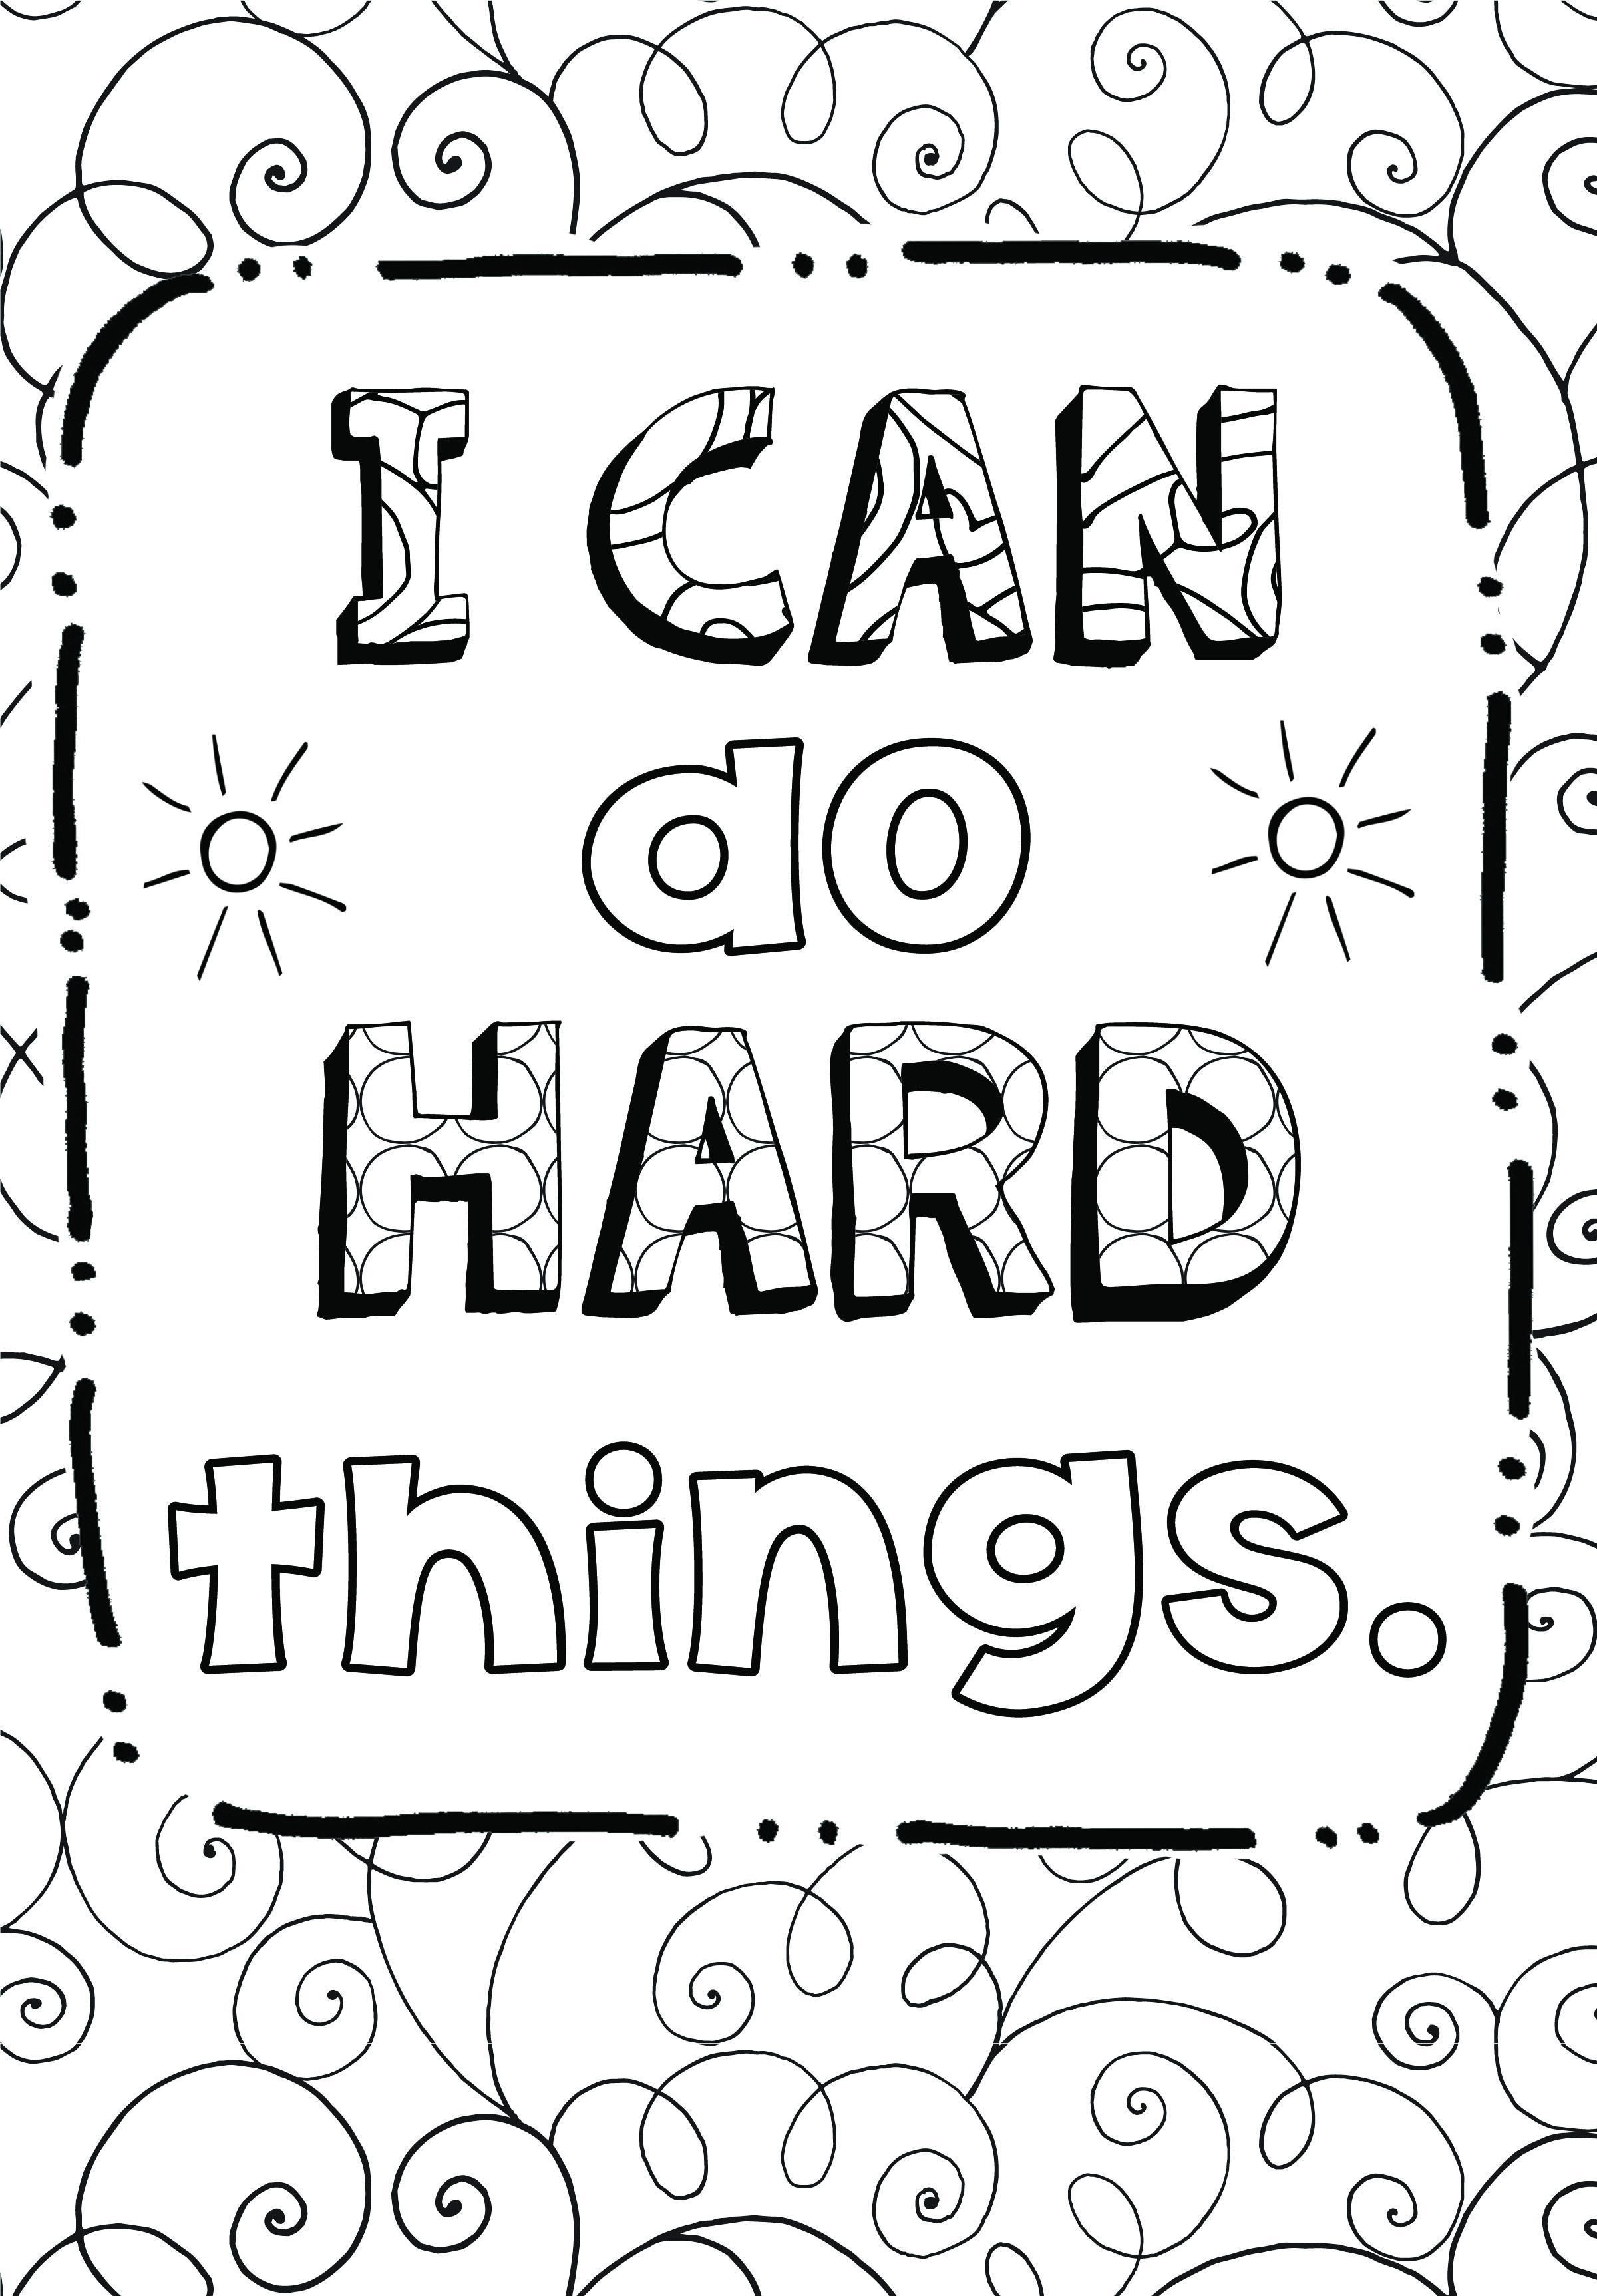 Free Coloring Page: Growth Mindset | Teaching Art Simplified - Free Coloring Pages Com Printable